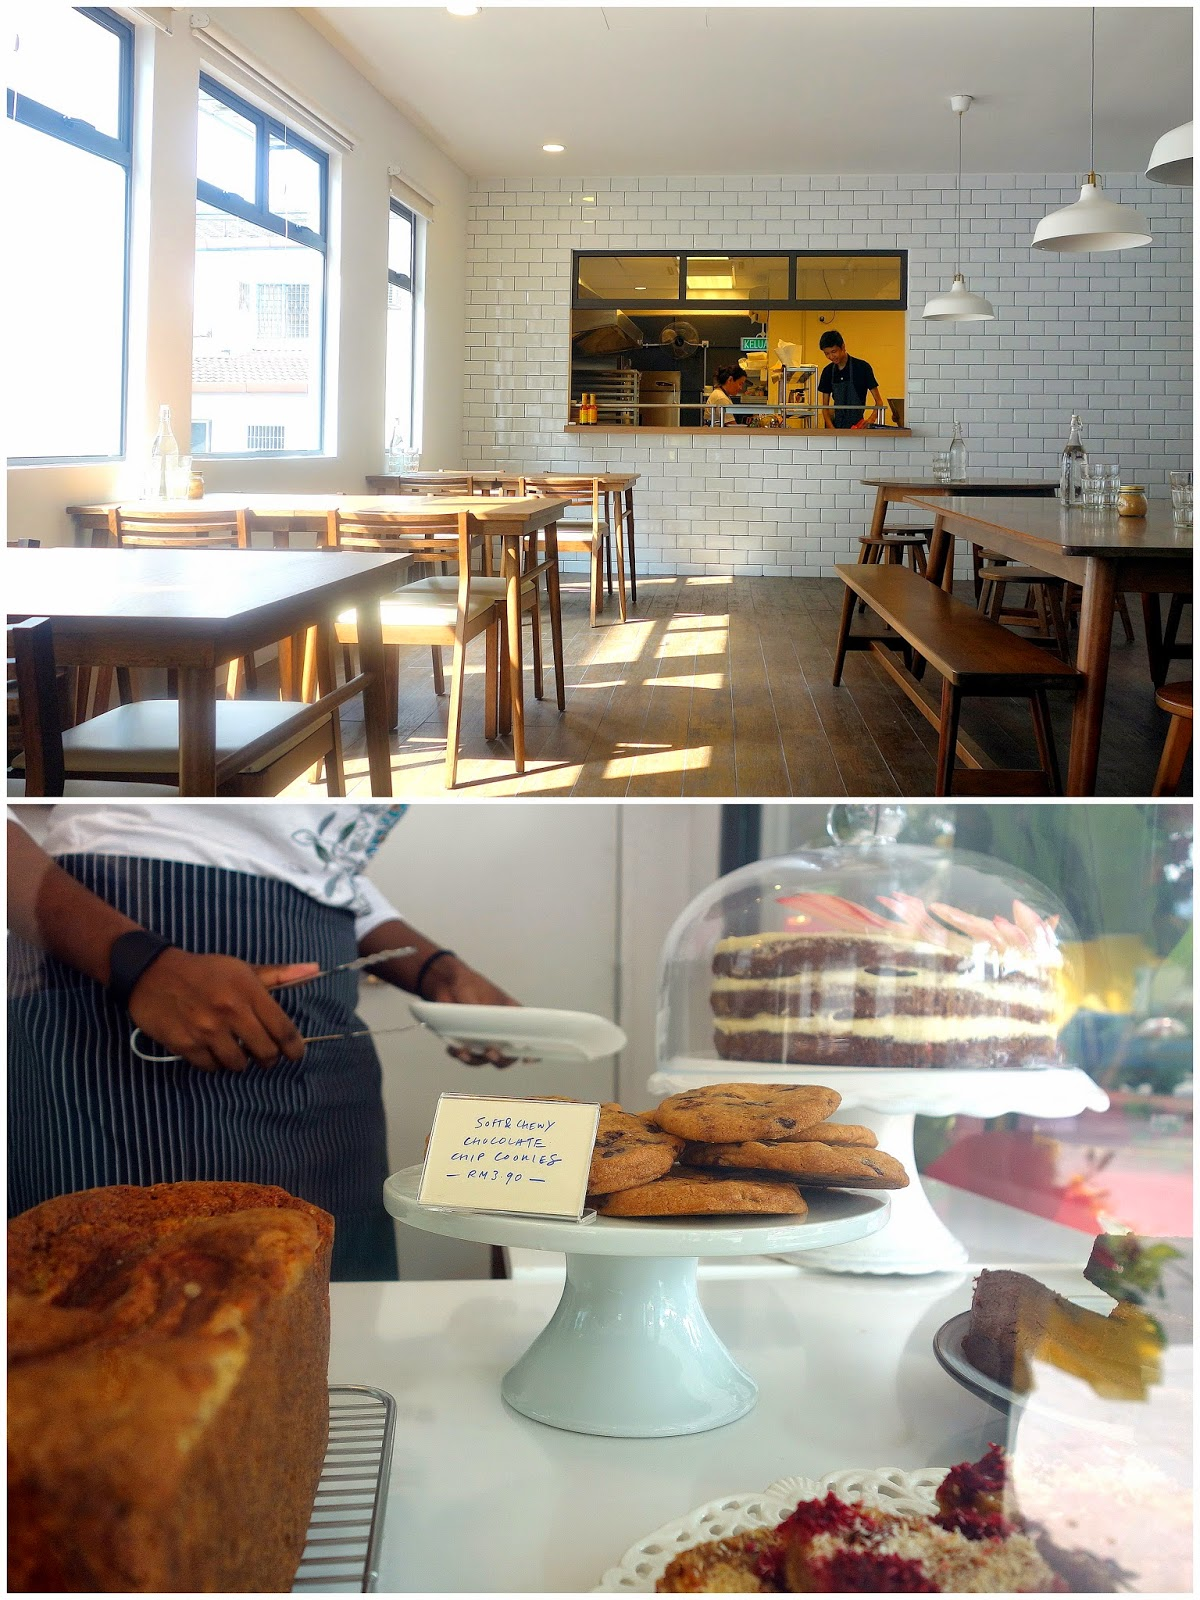 the kitchen table restaurant bakery kitchen table restaurant The Kitchen Table stands out with its clean bright white facade interior plus its handsome wooden furnishing simple but strikingly fitting